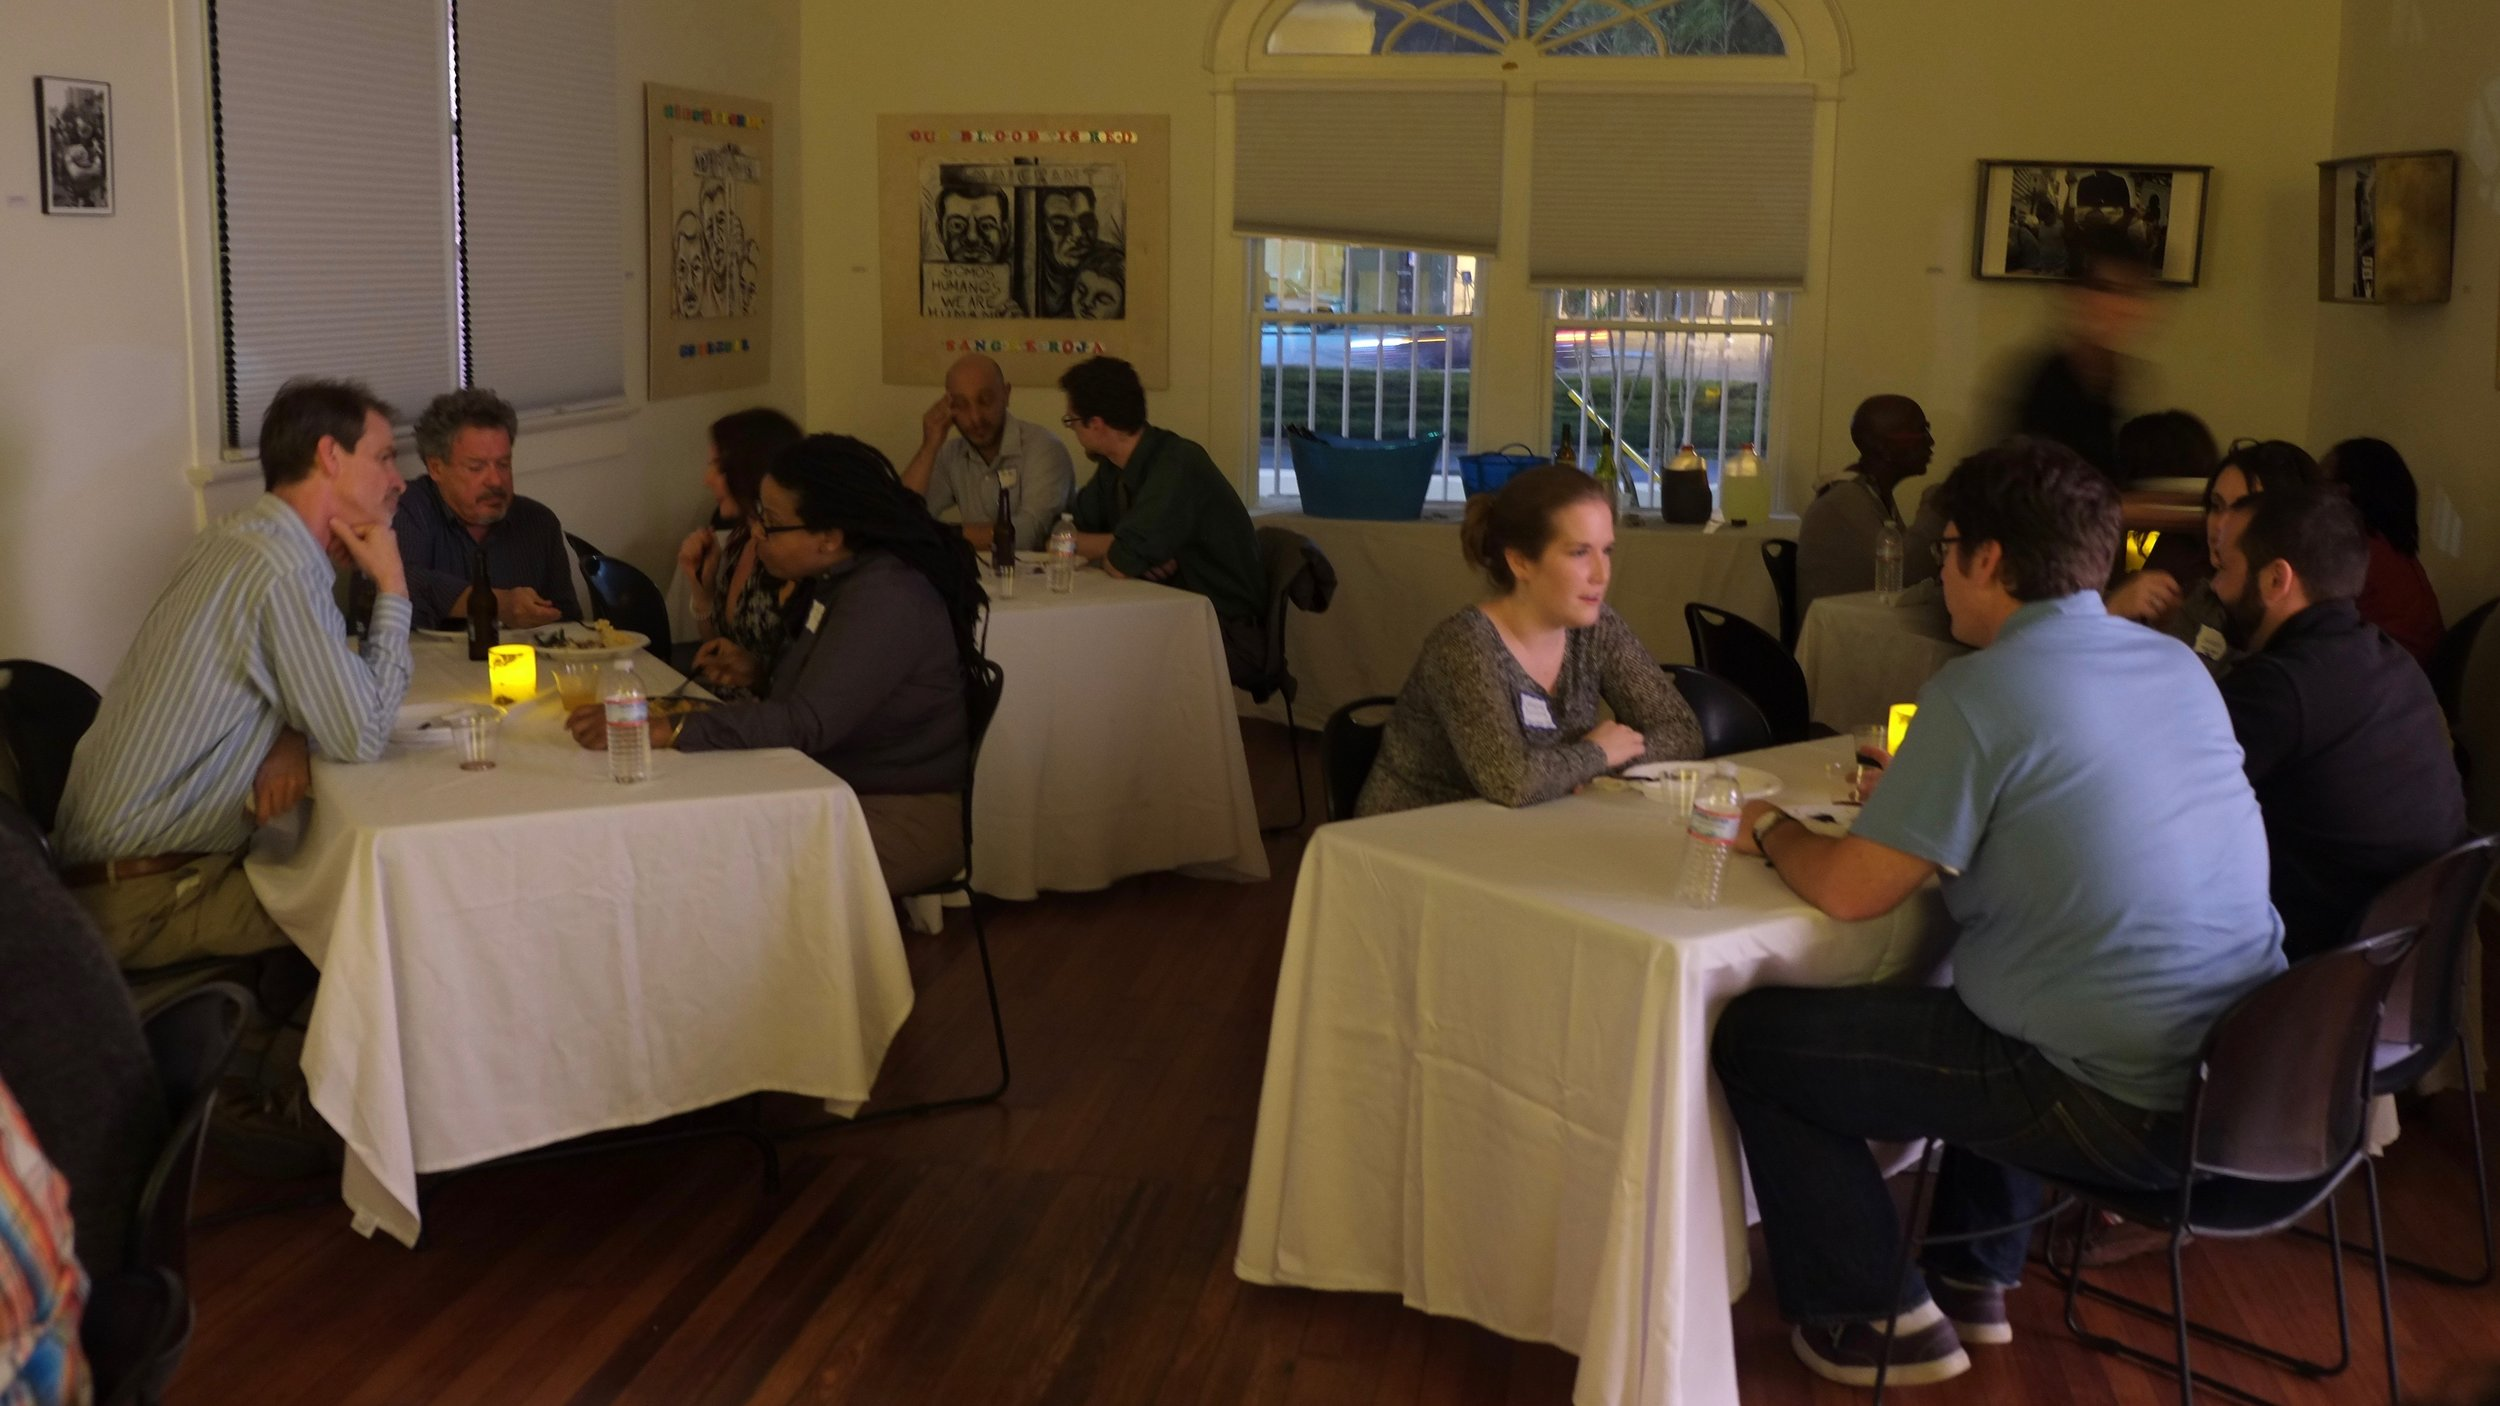 New Orleans MUSIC EDUCATORS gather FOR A dinner with Eric Booth to Discuss the global el sistema movement;related findings from his and tricia tunstall's book, PLAYING FOR THEIR LIVES  ;  and HOW TO CREATE A LOCAL network of strings teachers in new orleans.